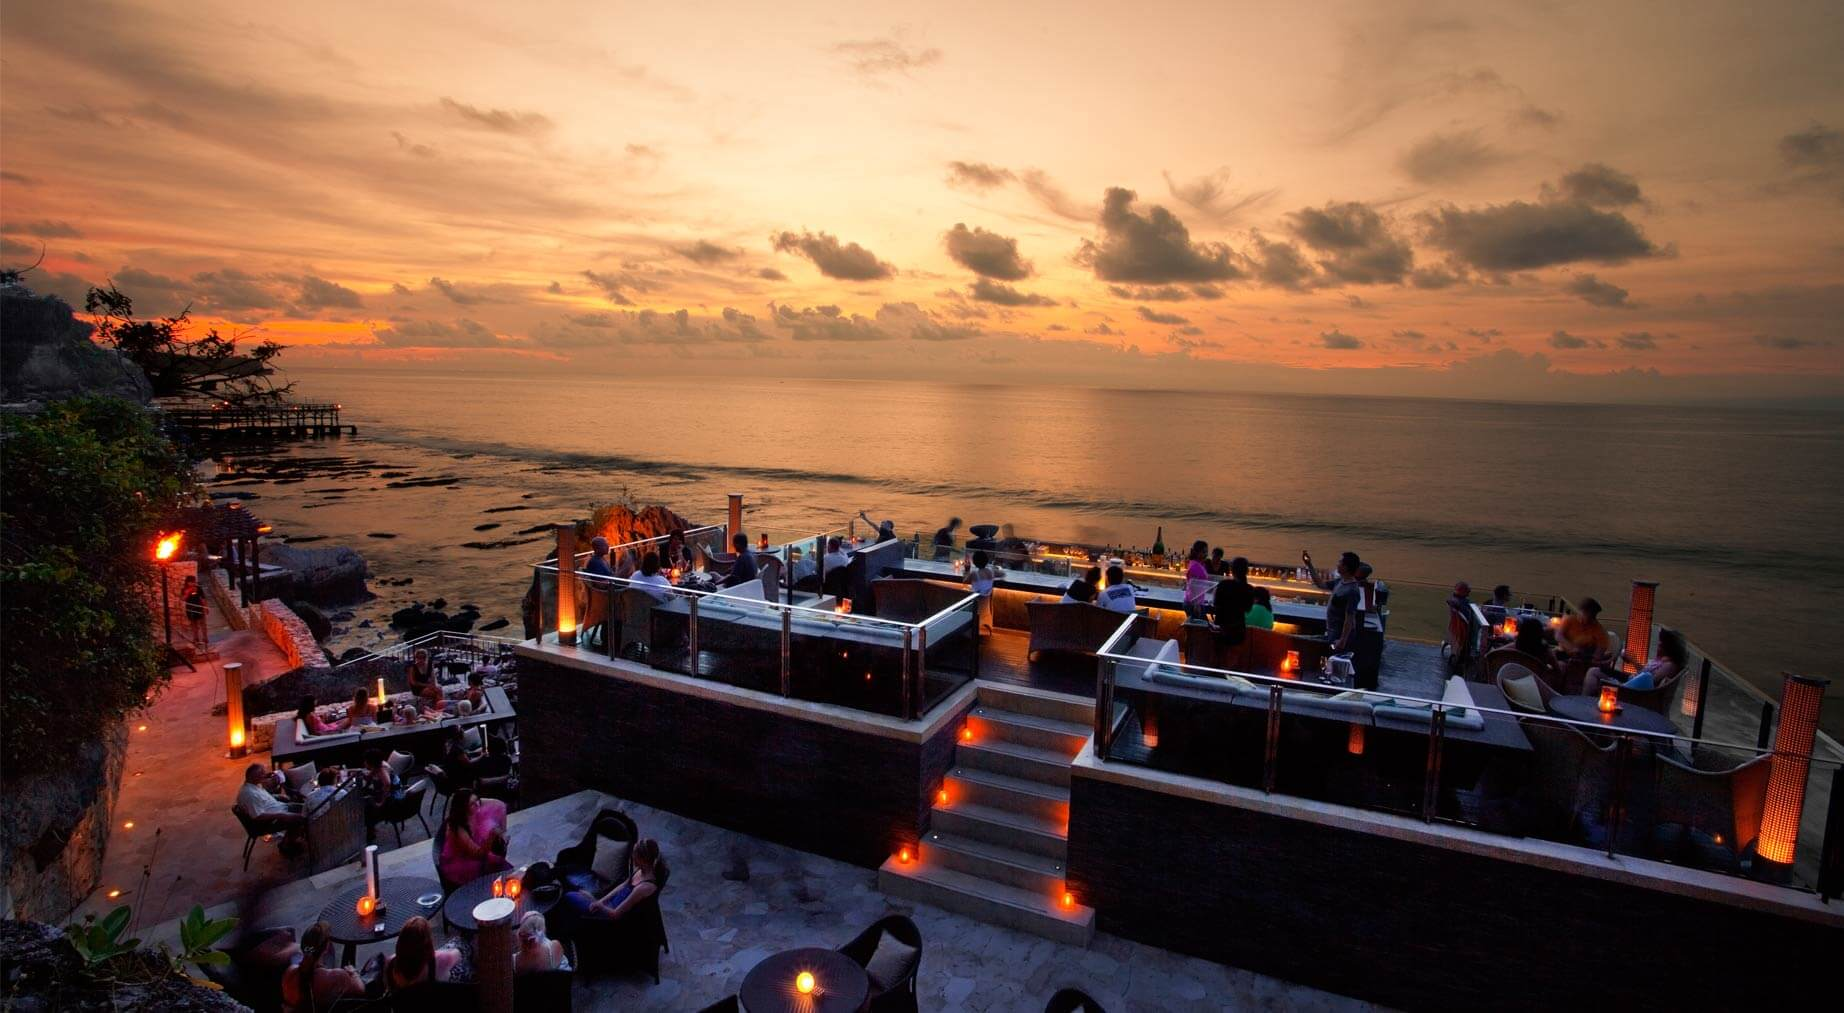 Raised 14 metres above the vast Indian Ocean, Rock Bar is nestled atop the rocky coastline of Jimbaran - a prime spot for watching the sun seamlessly set into the sapphire sea. Coupled with a glamorous sultry ambience and chilled cocktail, the luxurious hang out's panoramic views are absolutely breathtaking. As part of luxury resort AYANA, the exclusive spot can only be accessed via a complimentary cliff side cable car. Slip on your glad rags, and relish in a special gathering or fairy-tale date at Rock Bar. - Rock Bar at Jimbaran